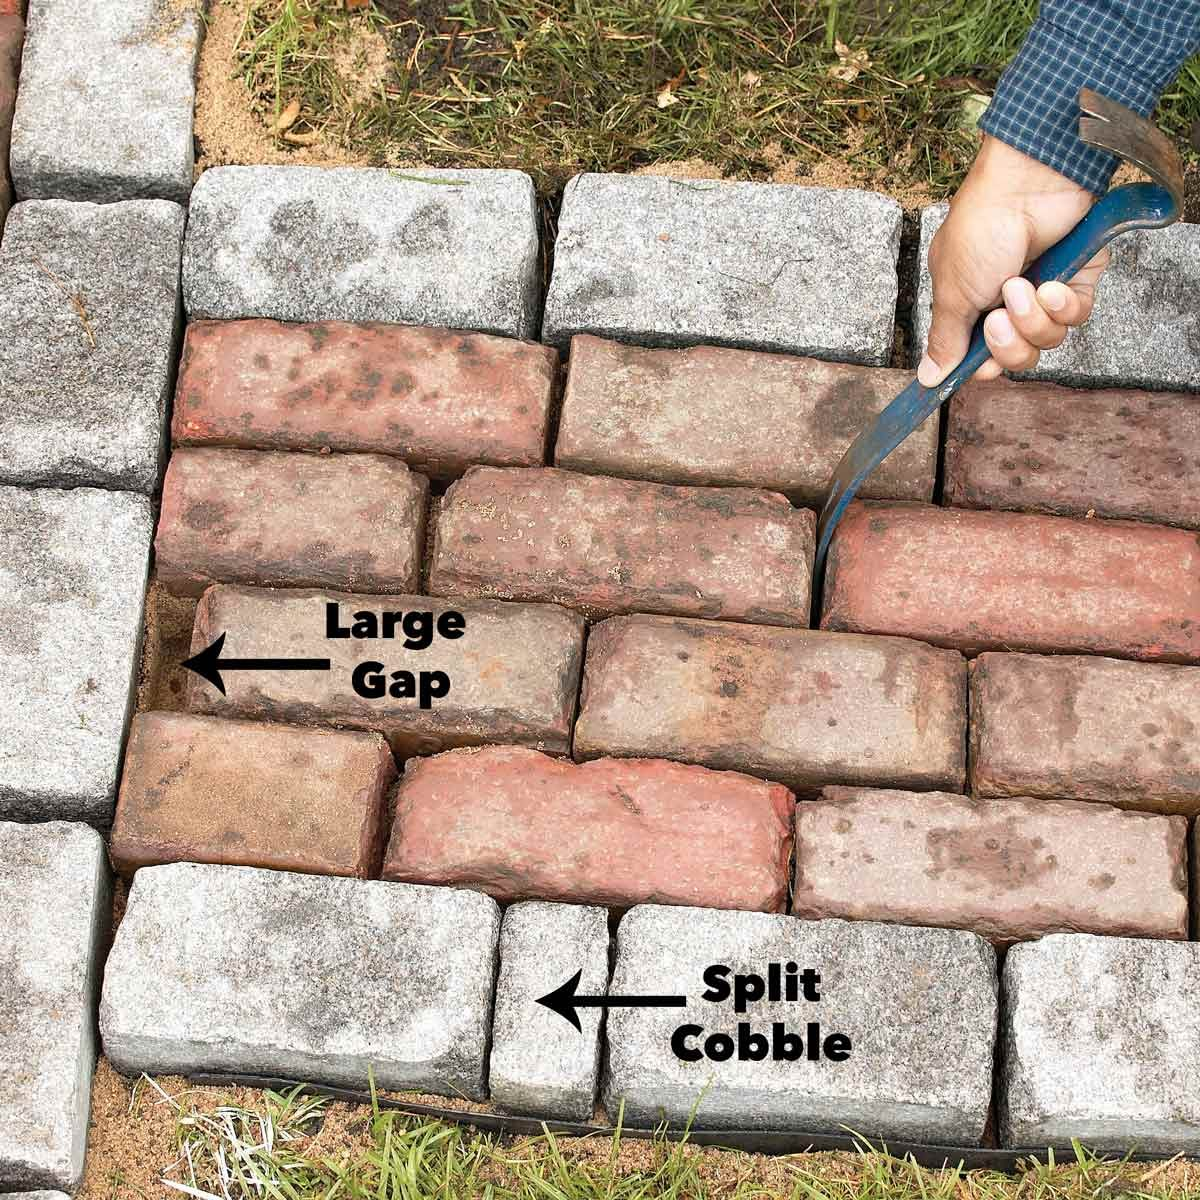 Build A Brick Pathway In The Garden | The Family Handyman